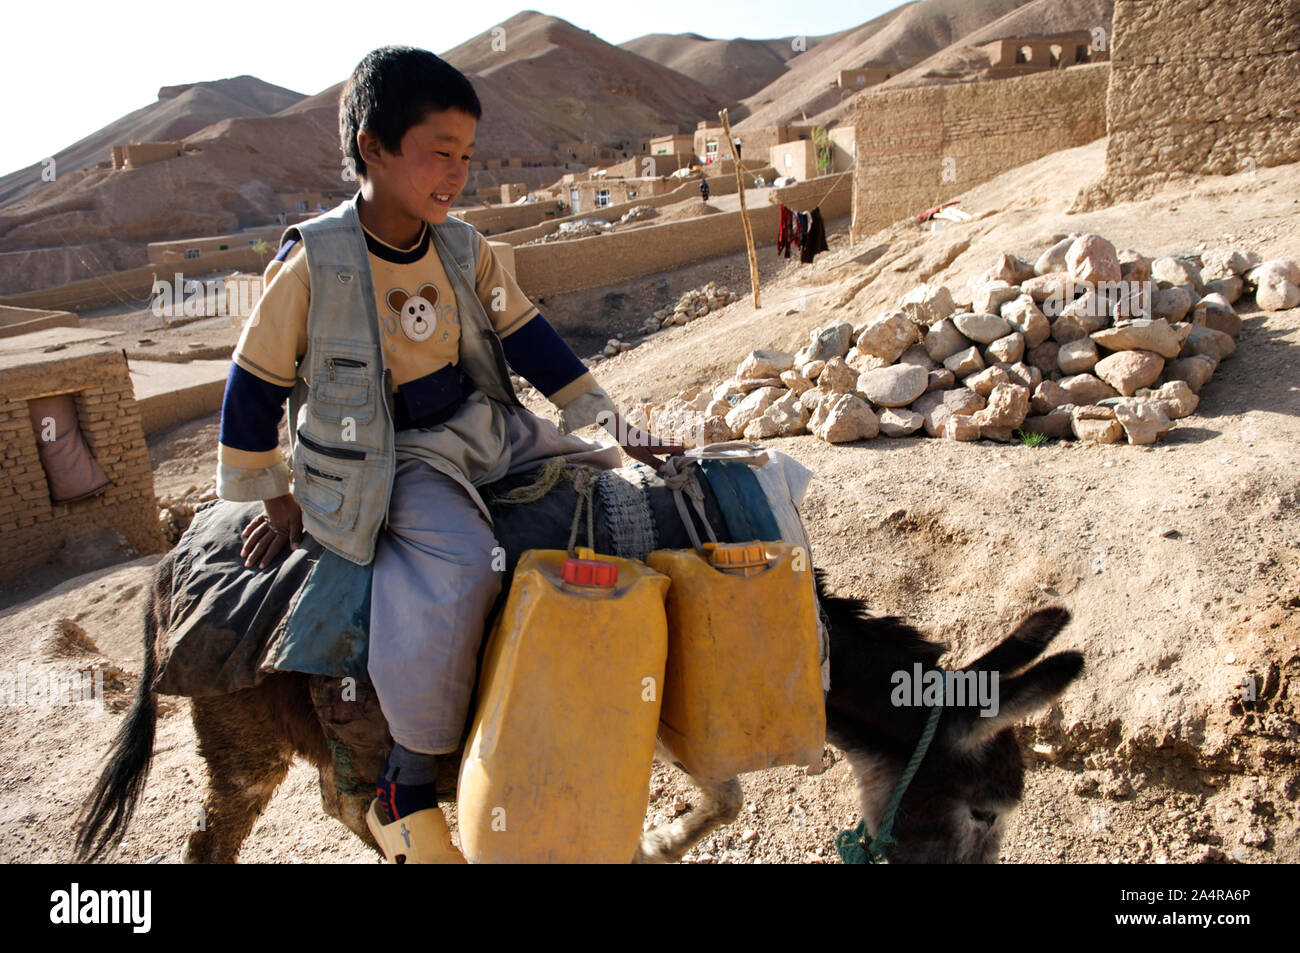 A boy transports water for his family on a donkey, in the village of Rag-e-shad, in central Bamyan province, Afghanistan. May 11, 2009. Stock Photo